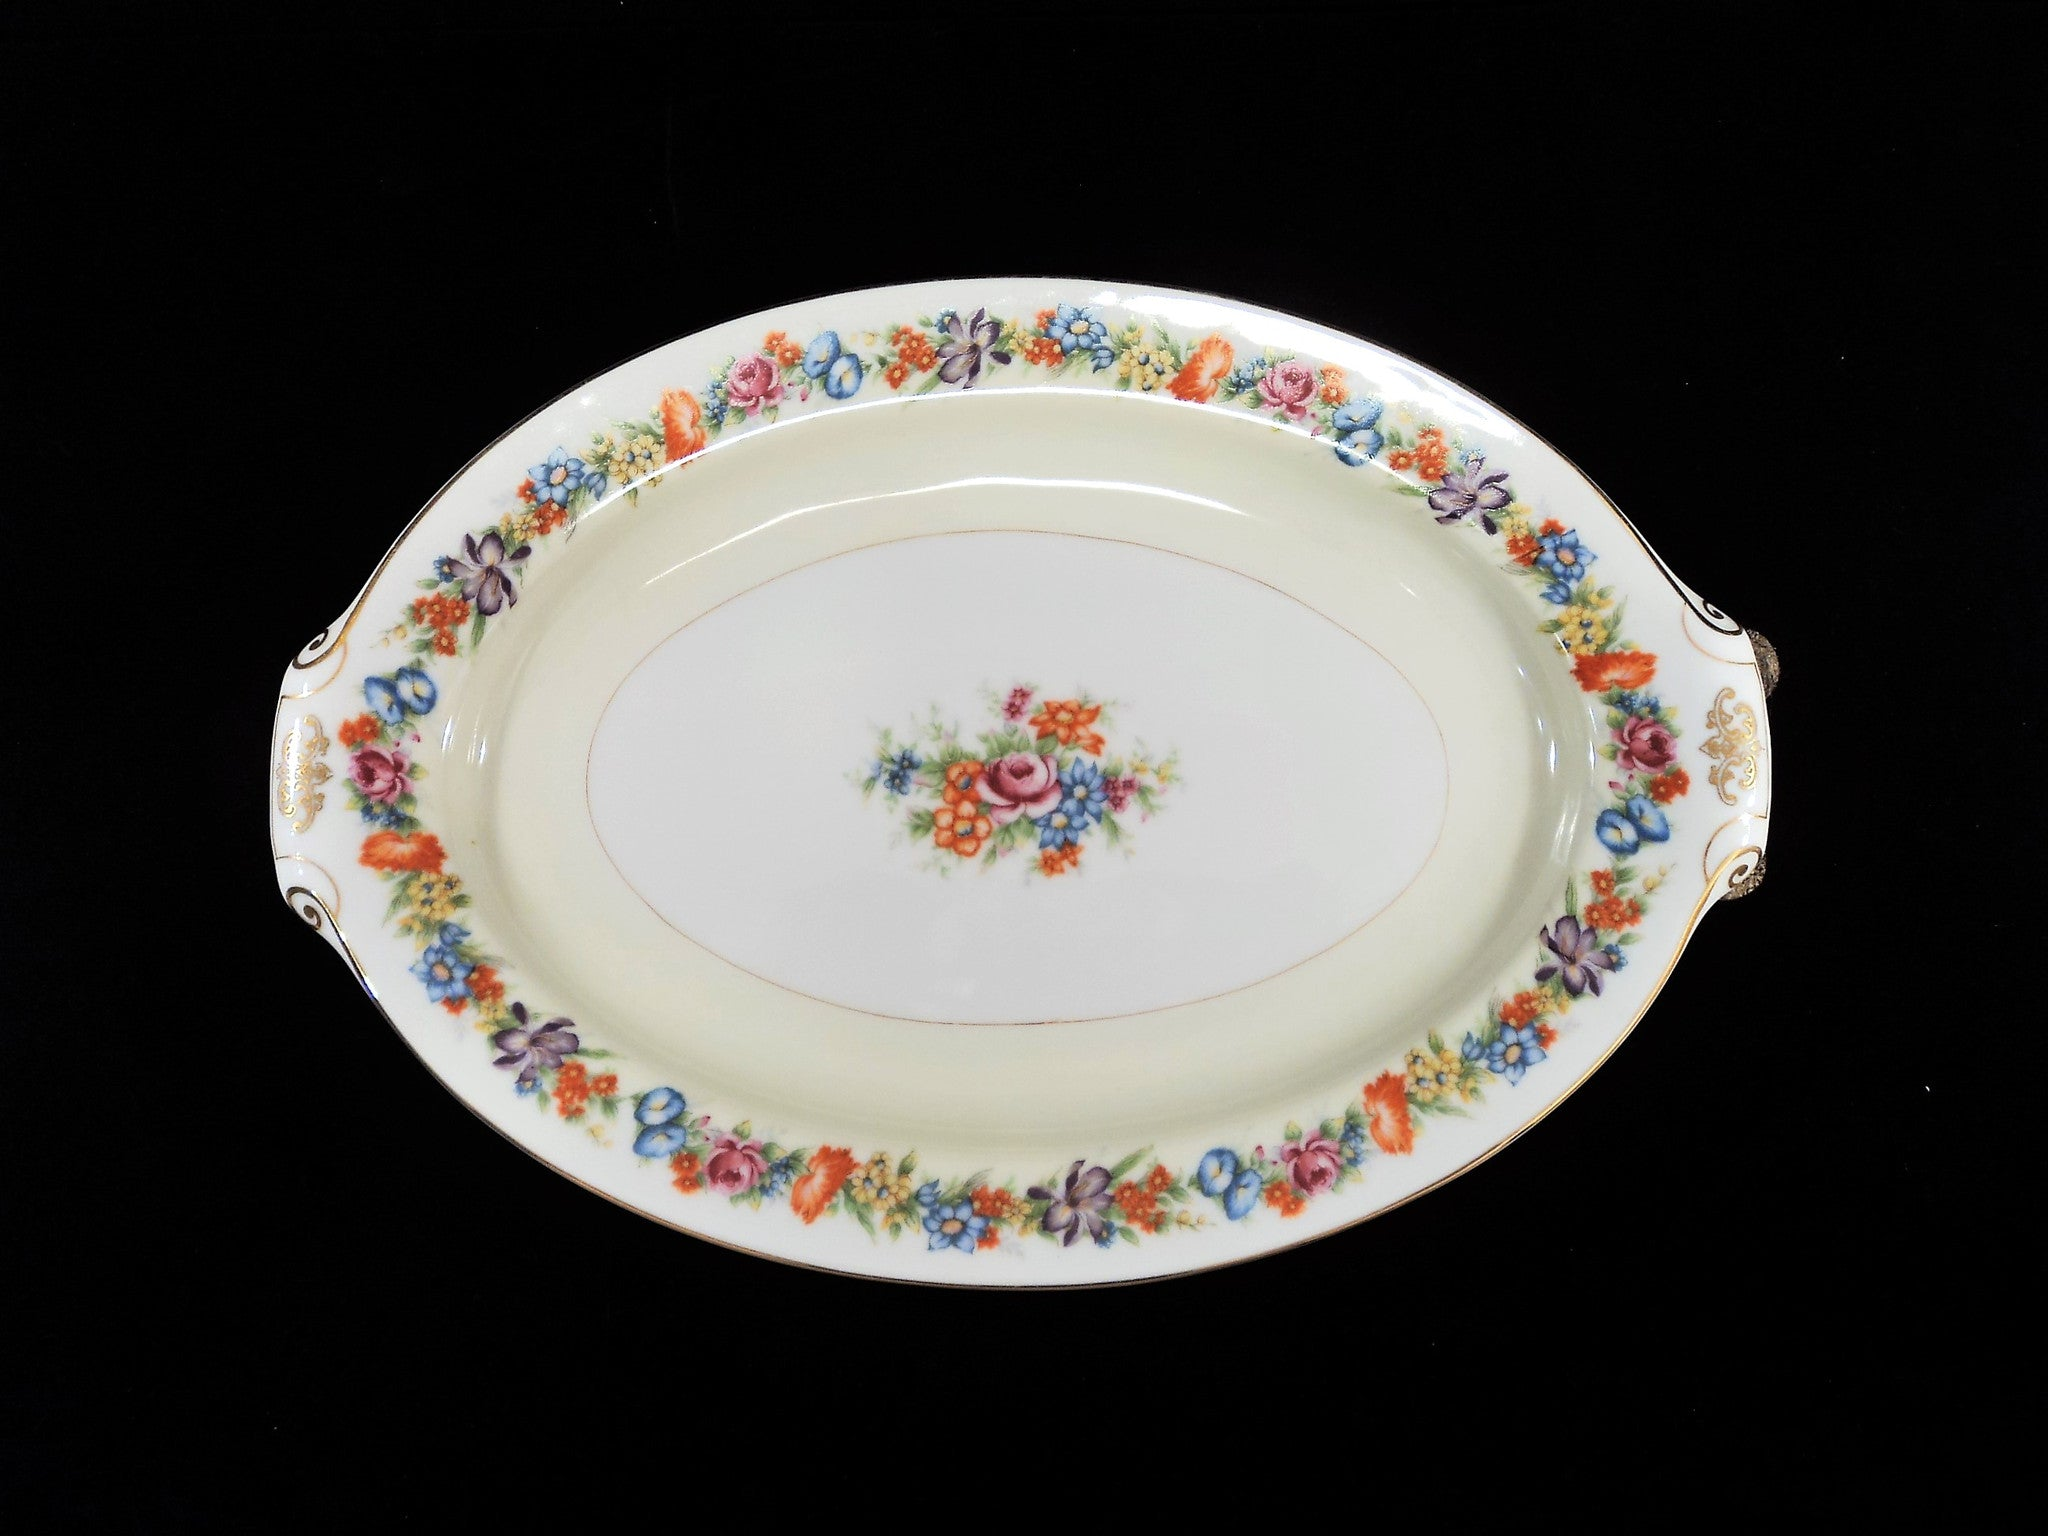 Narumi Porcelain Occupied Japan Oval Platter